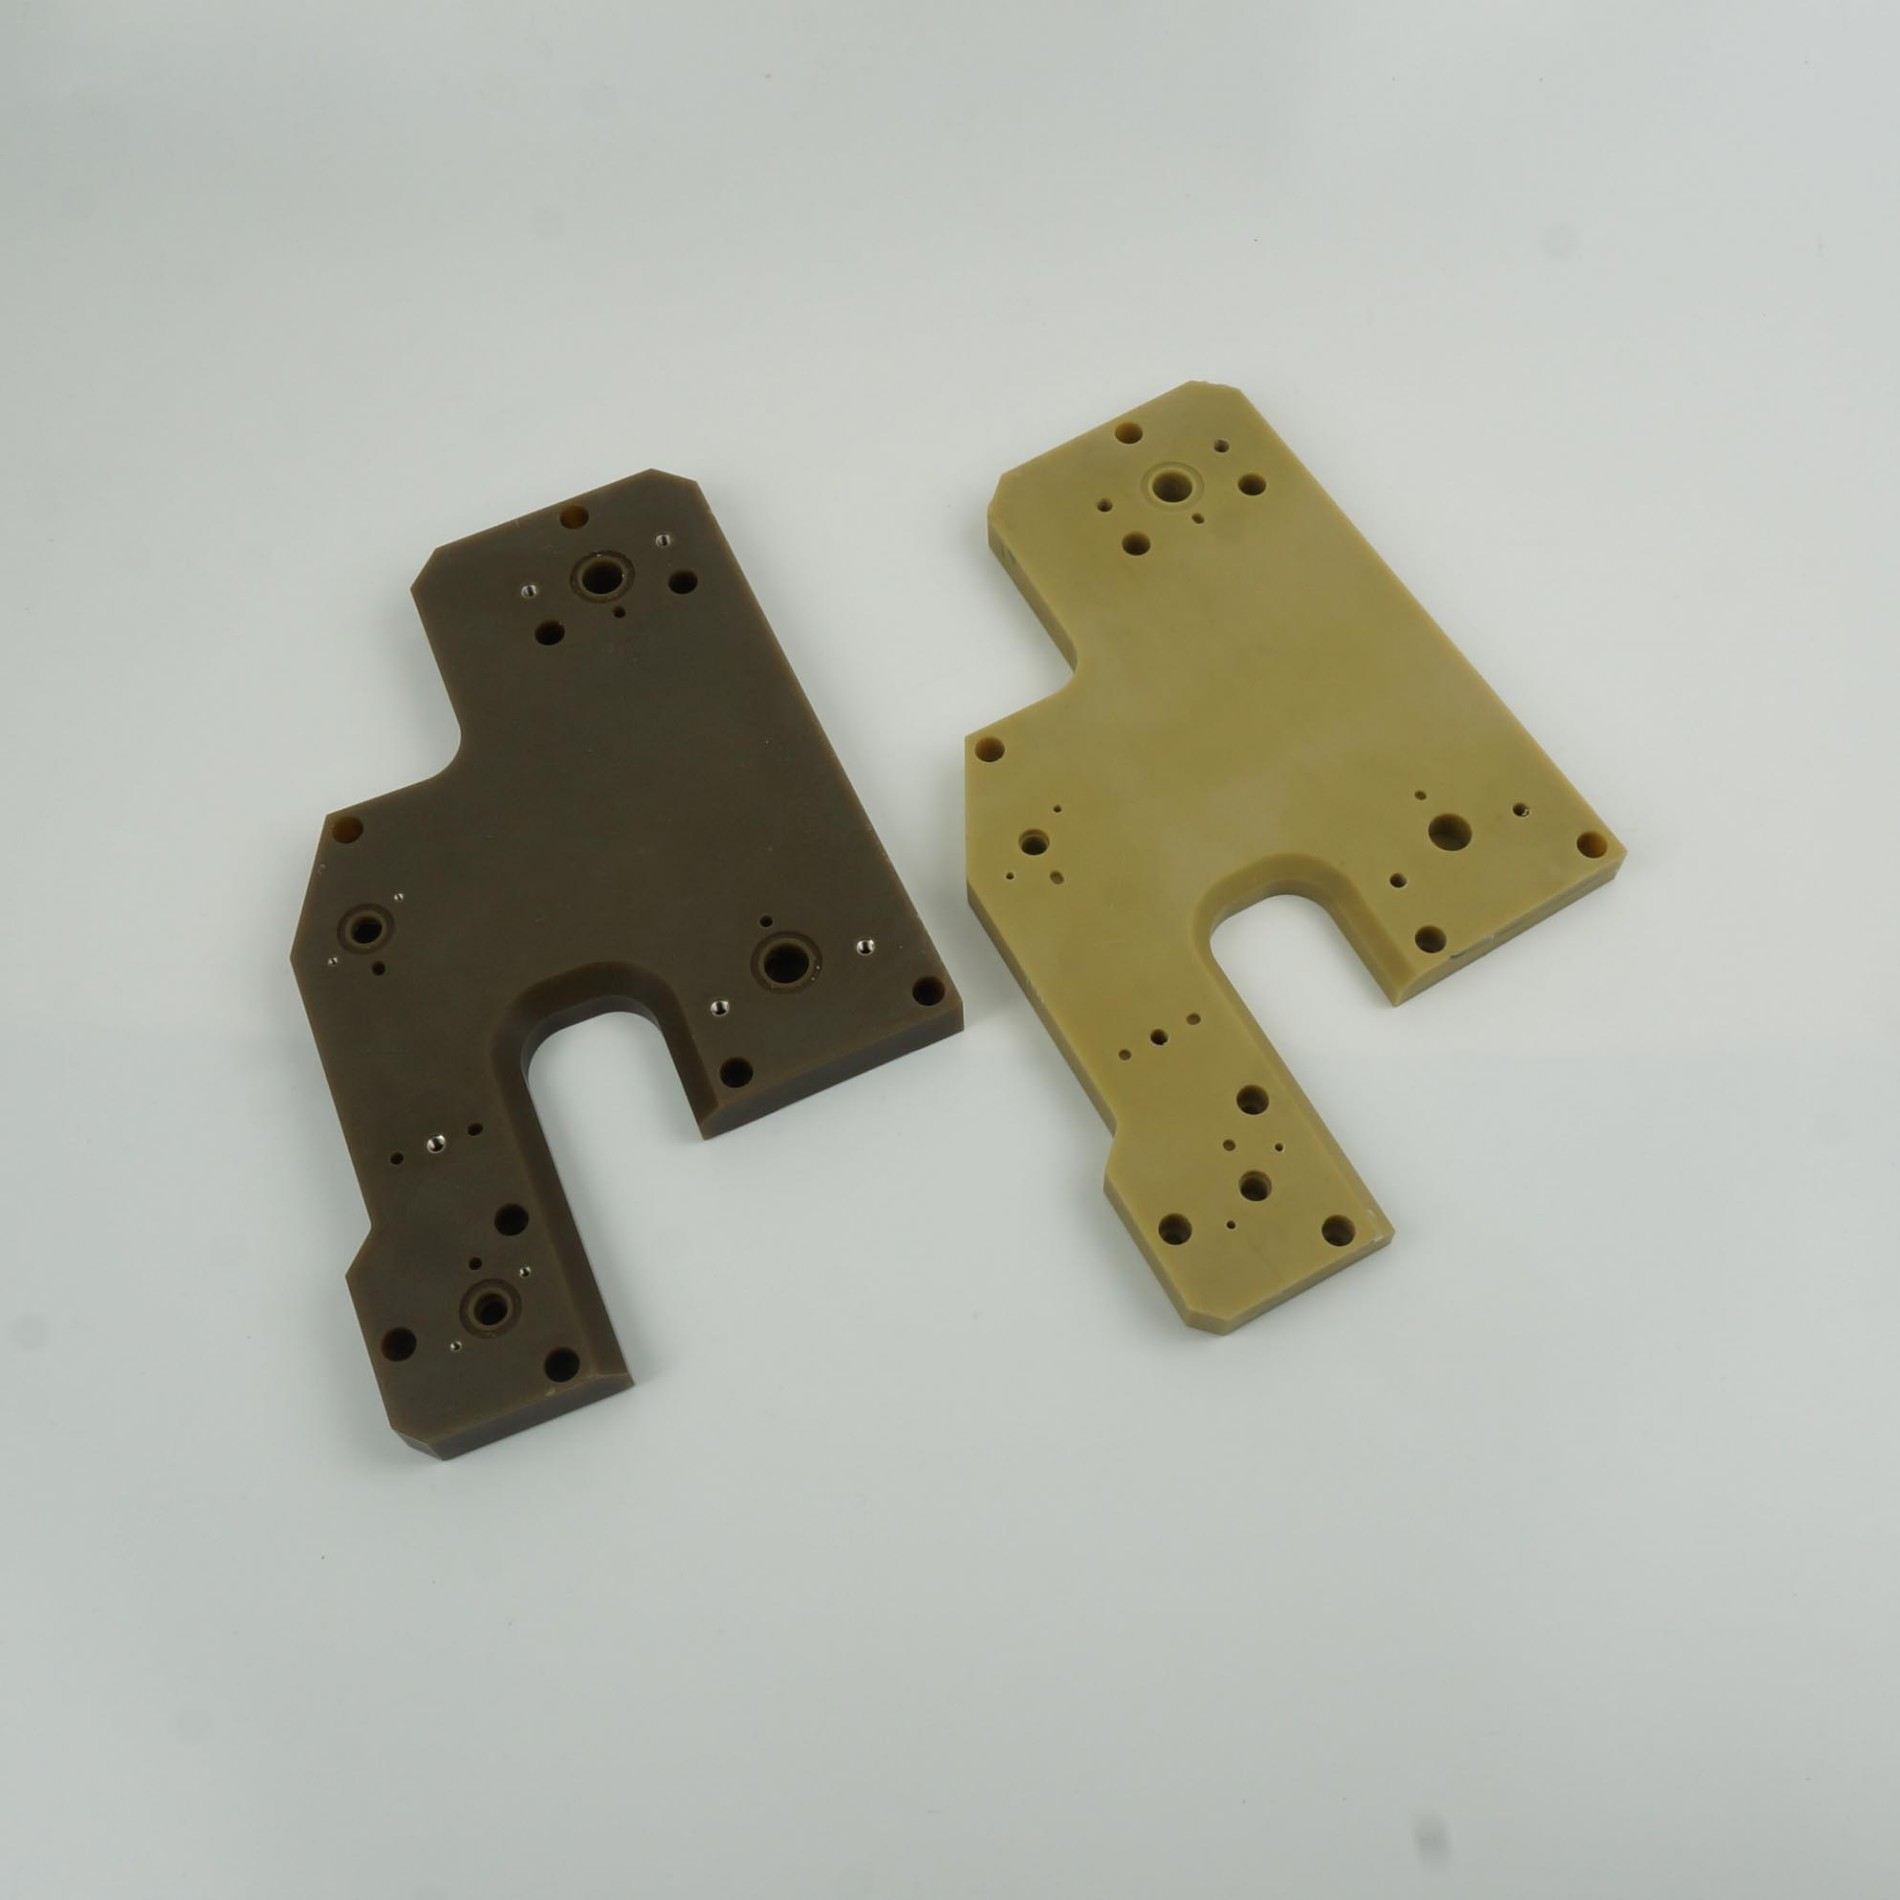 3D Printing Rapid Prototype Parts Services